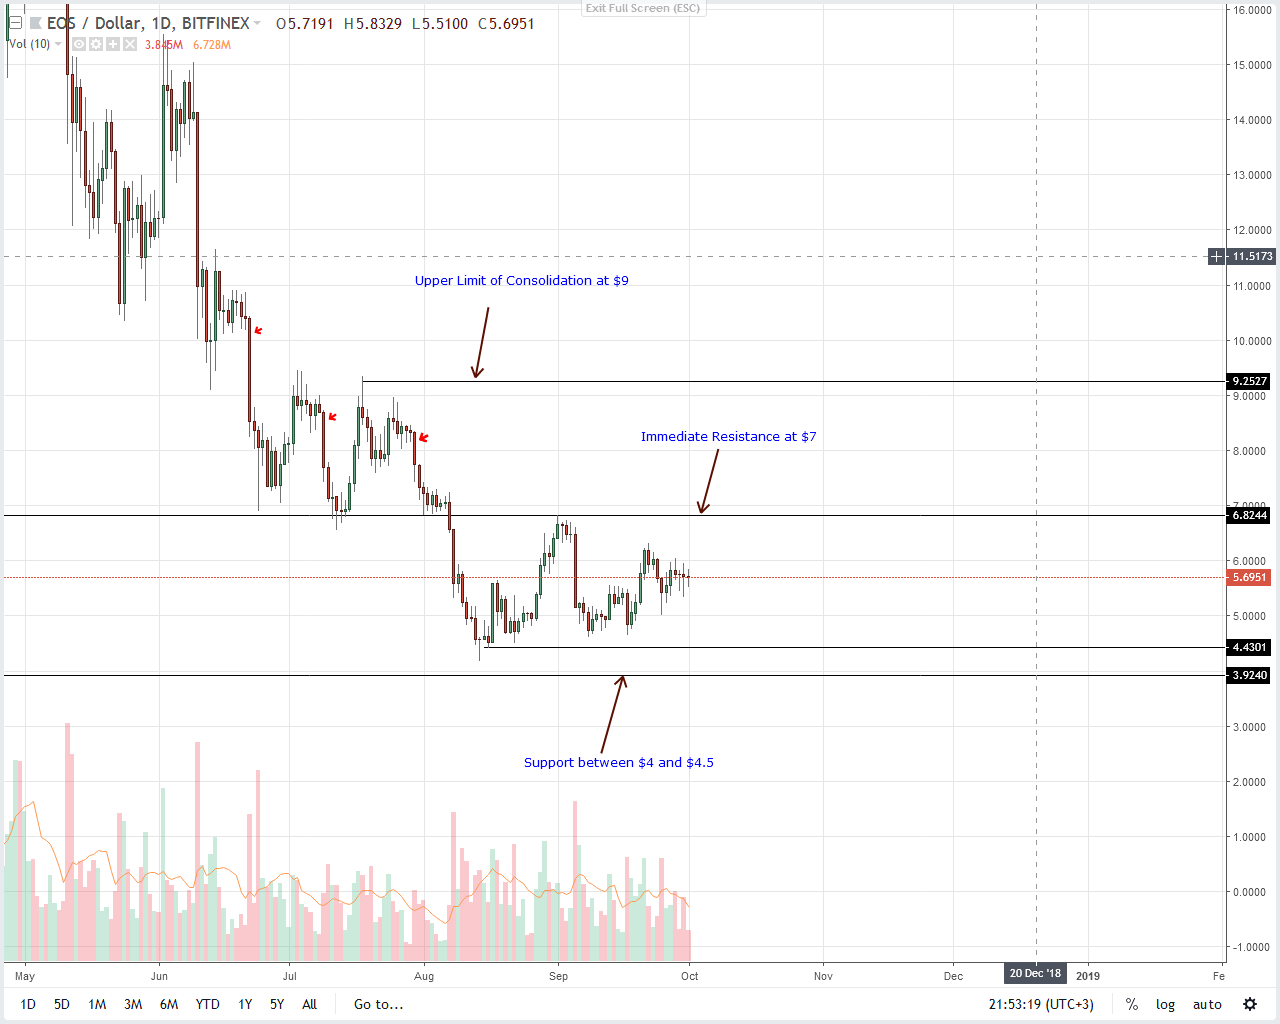 EOS Daily Chart Oct 2